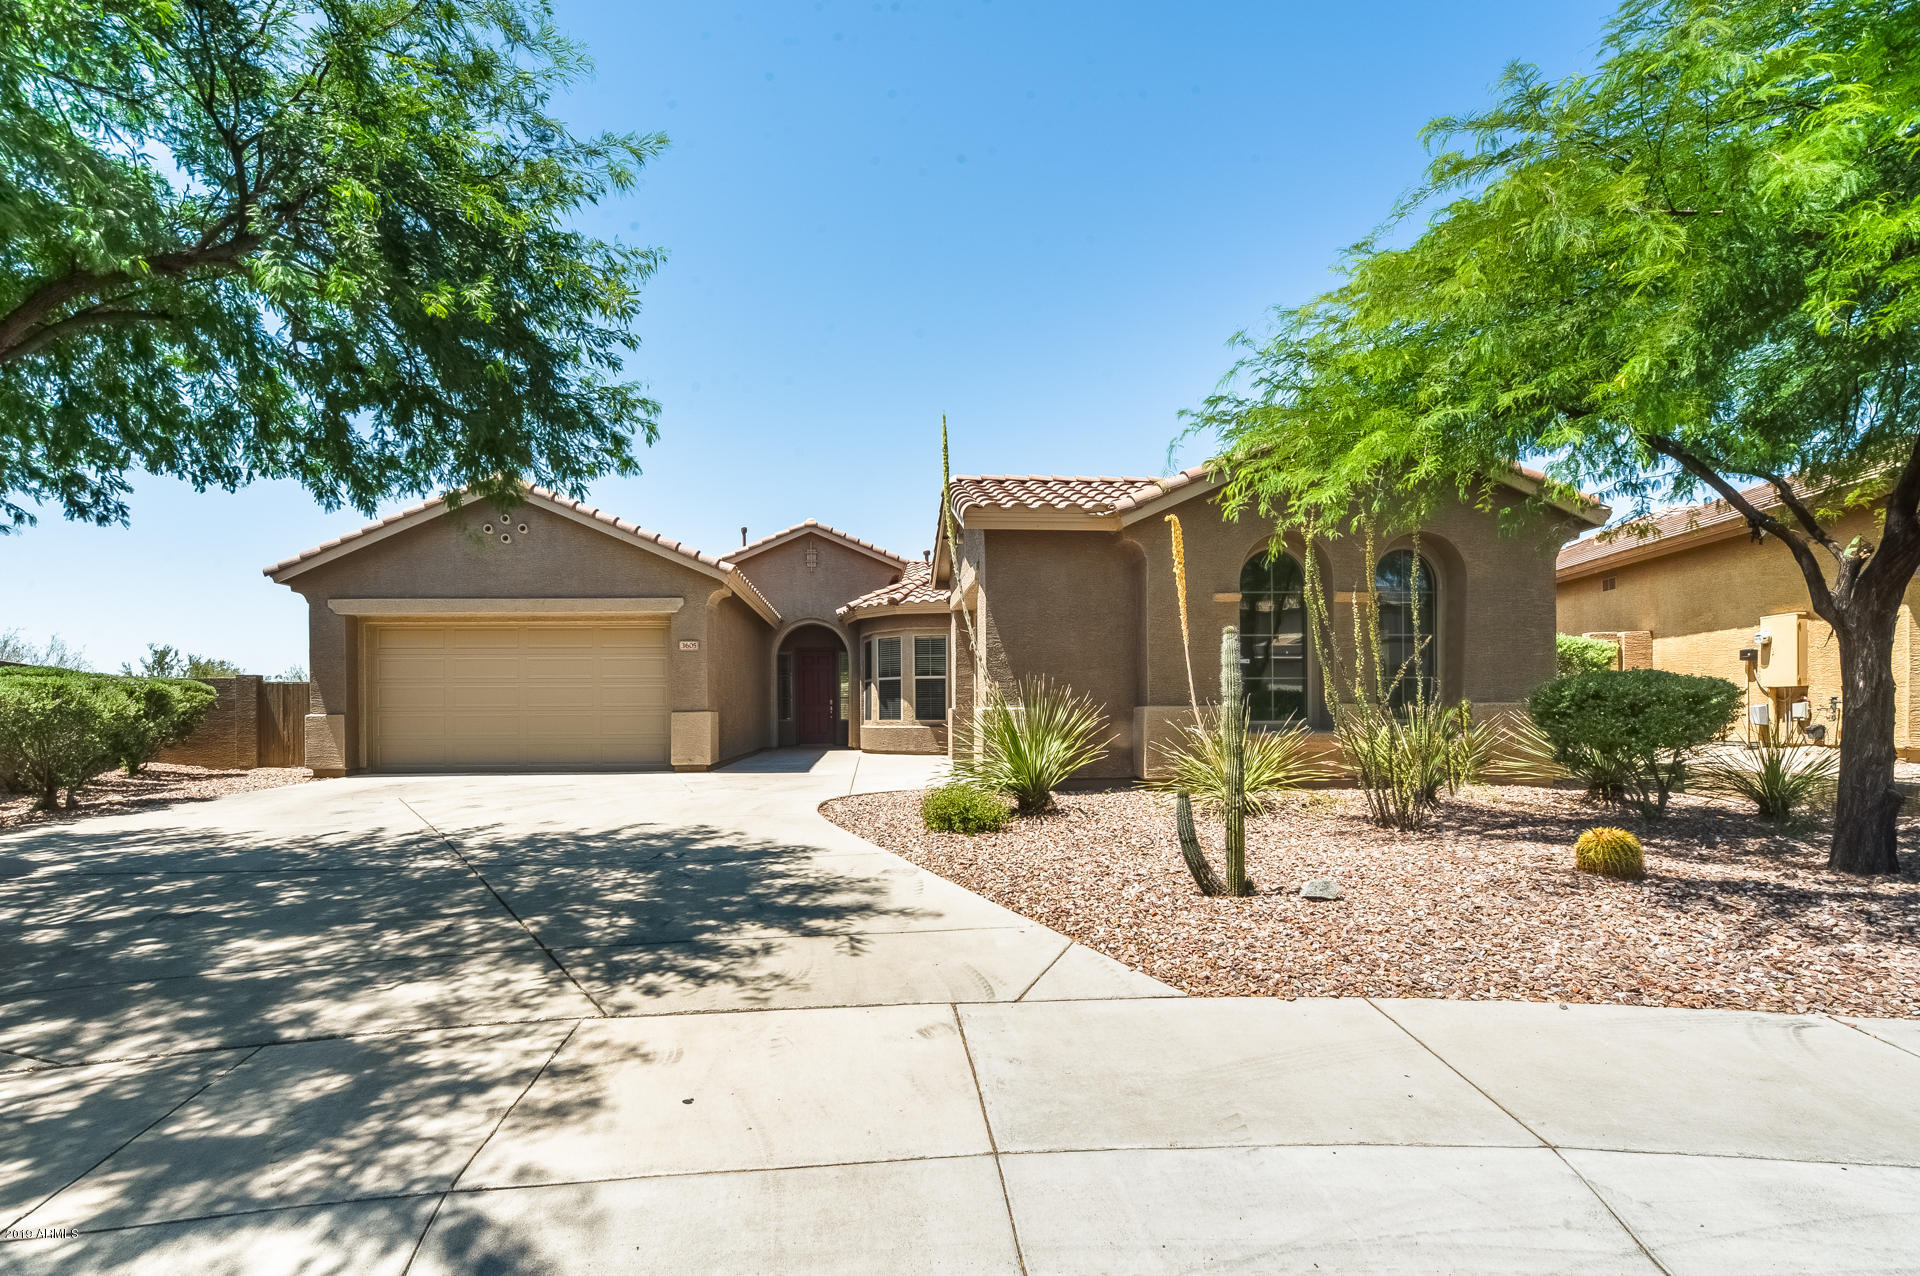 3605 W LINKS Drive, Anthem in Maricopa County, AZ 85086 Home for Sale